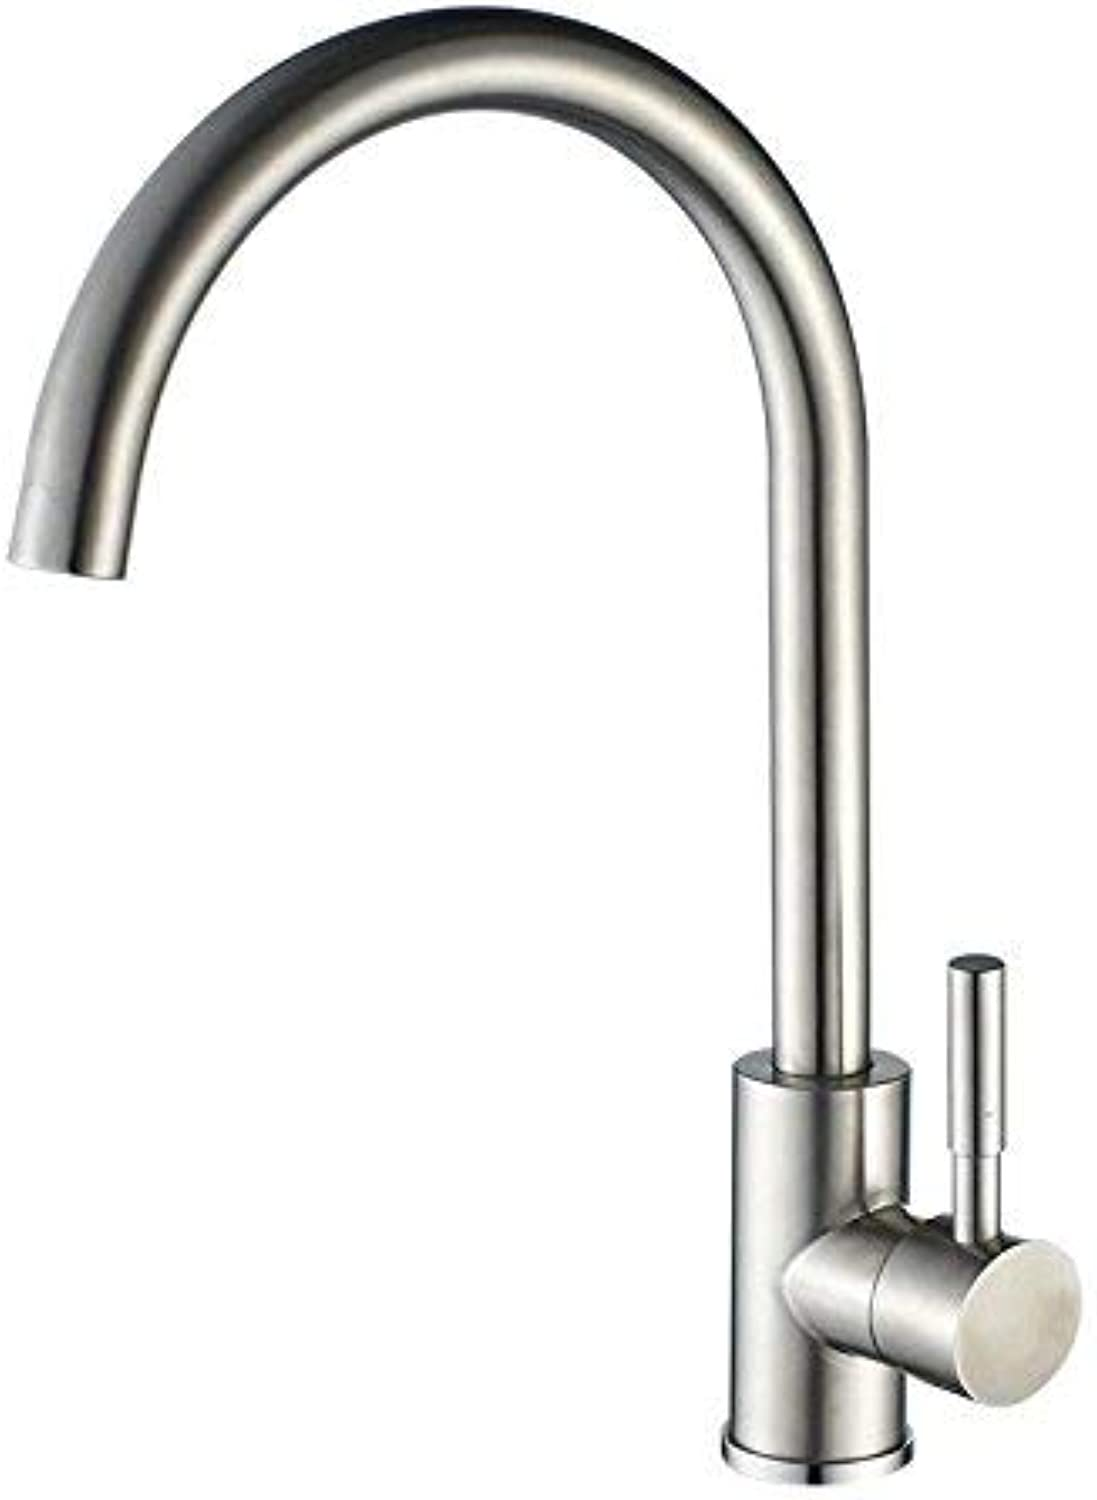 BDYJY ※ Bathroom Sink Faucets Stainless Steel 304 Hot and Cold Water 2 Hole Sink Mixer Sink Faucet Kitchen Faucets